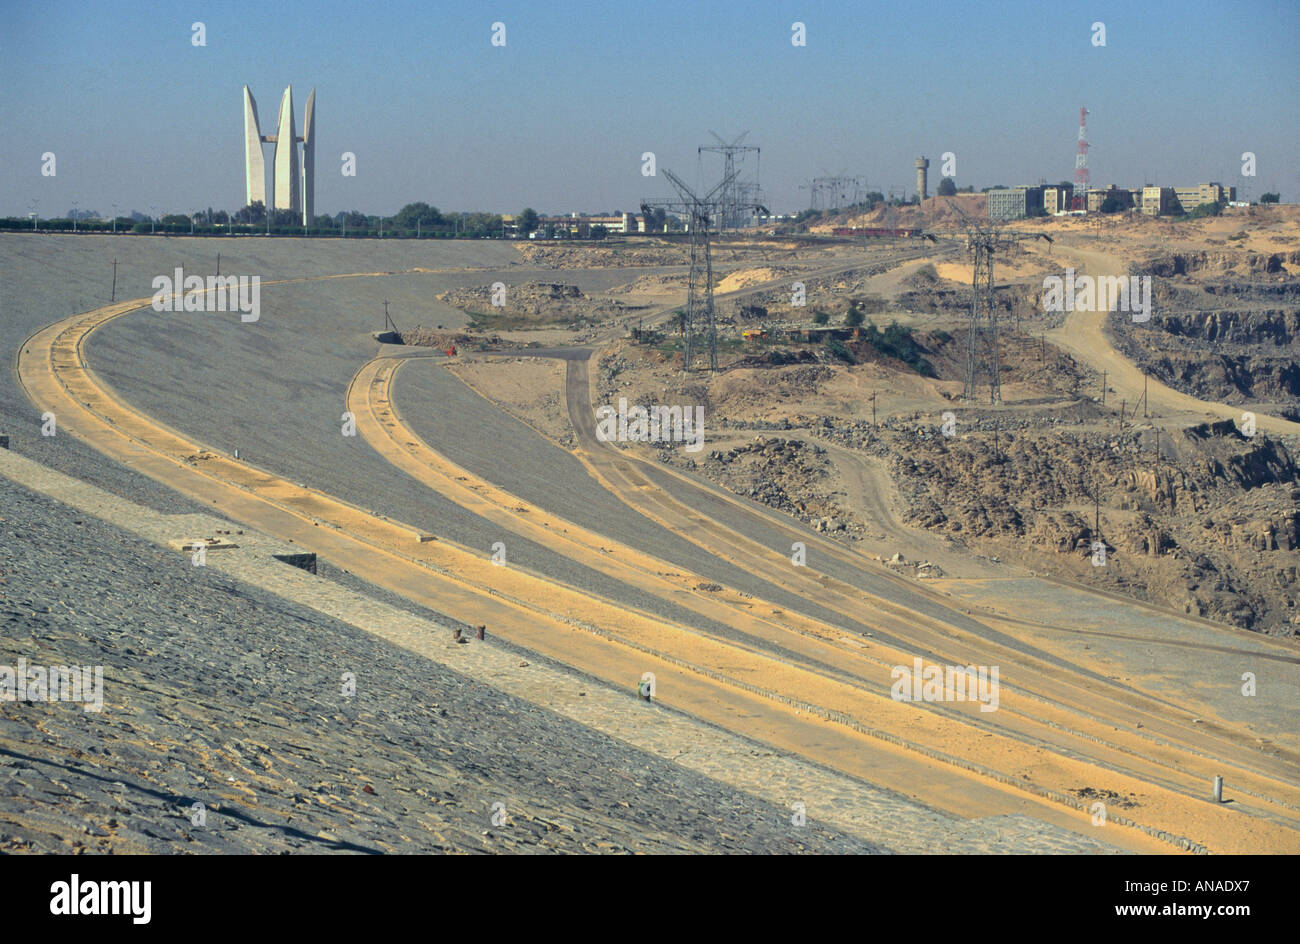 Upper Egypt Aswan The Aswan High Dam view of the dam wall with with modern monument in bkgd - Stock Image